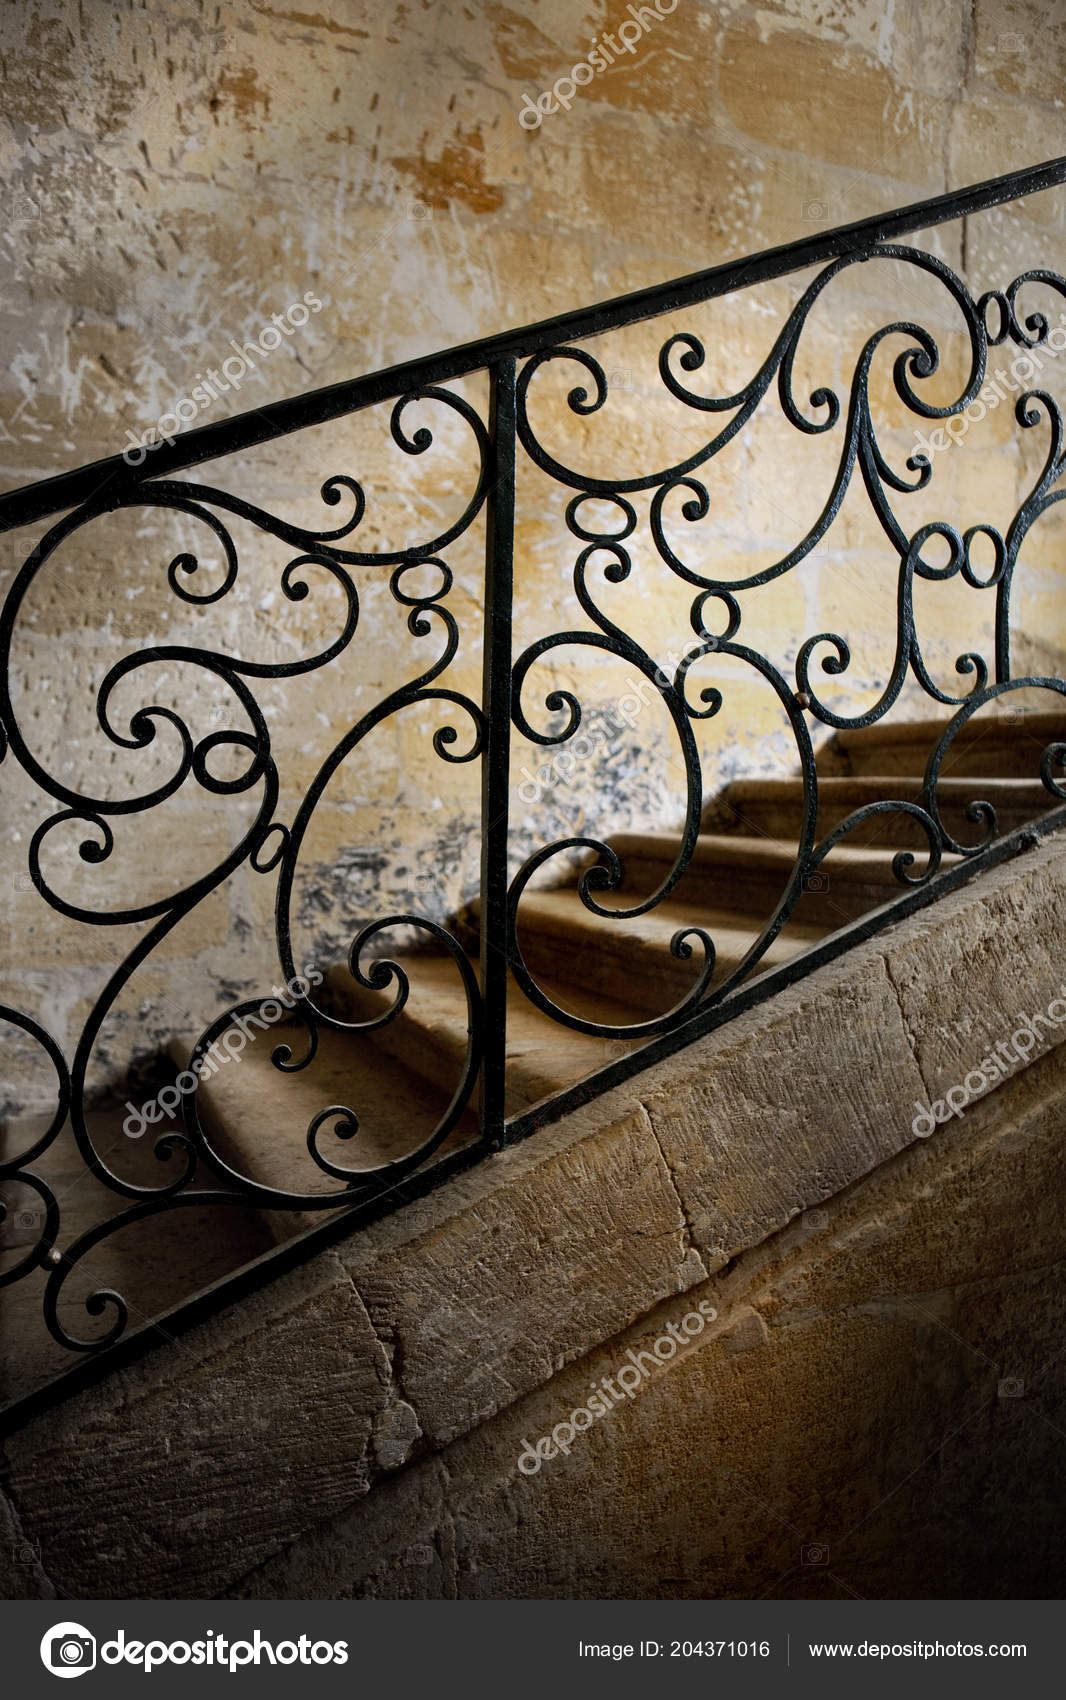 Image of: Wrought Iron Handrail Staircase Mansion Stock Photo C Jacquespalut 204371016